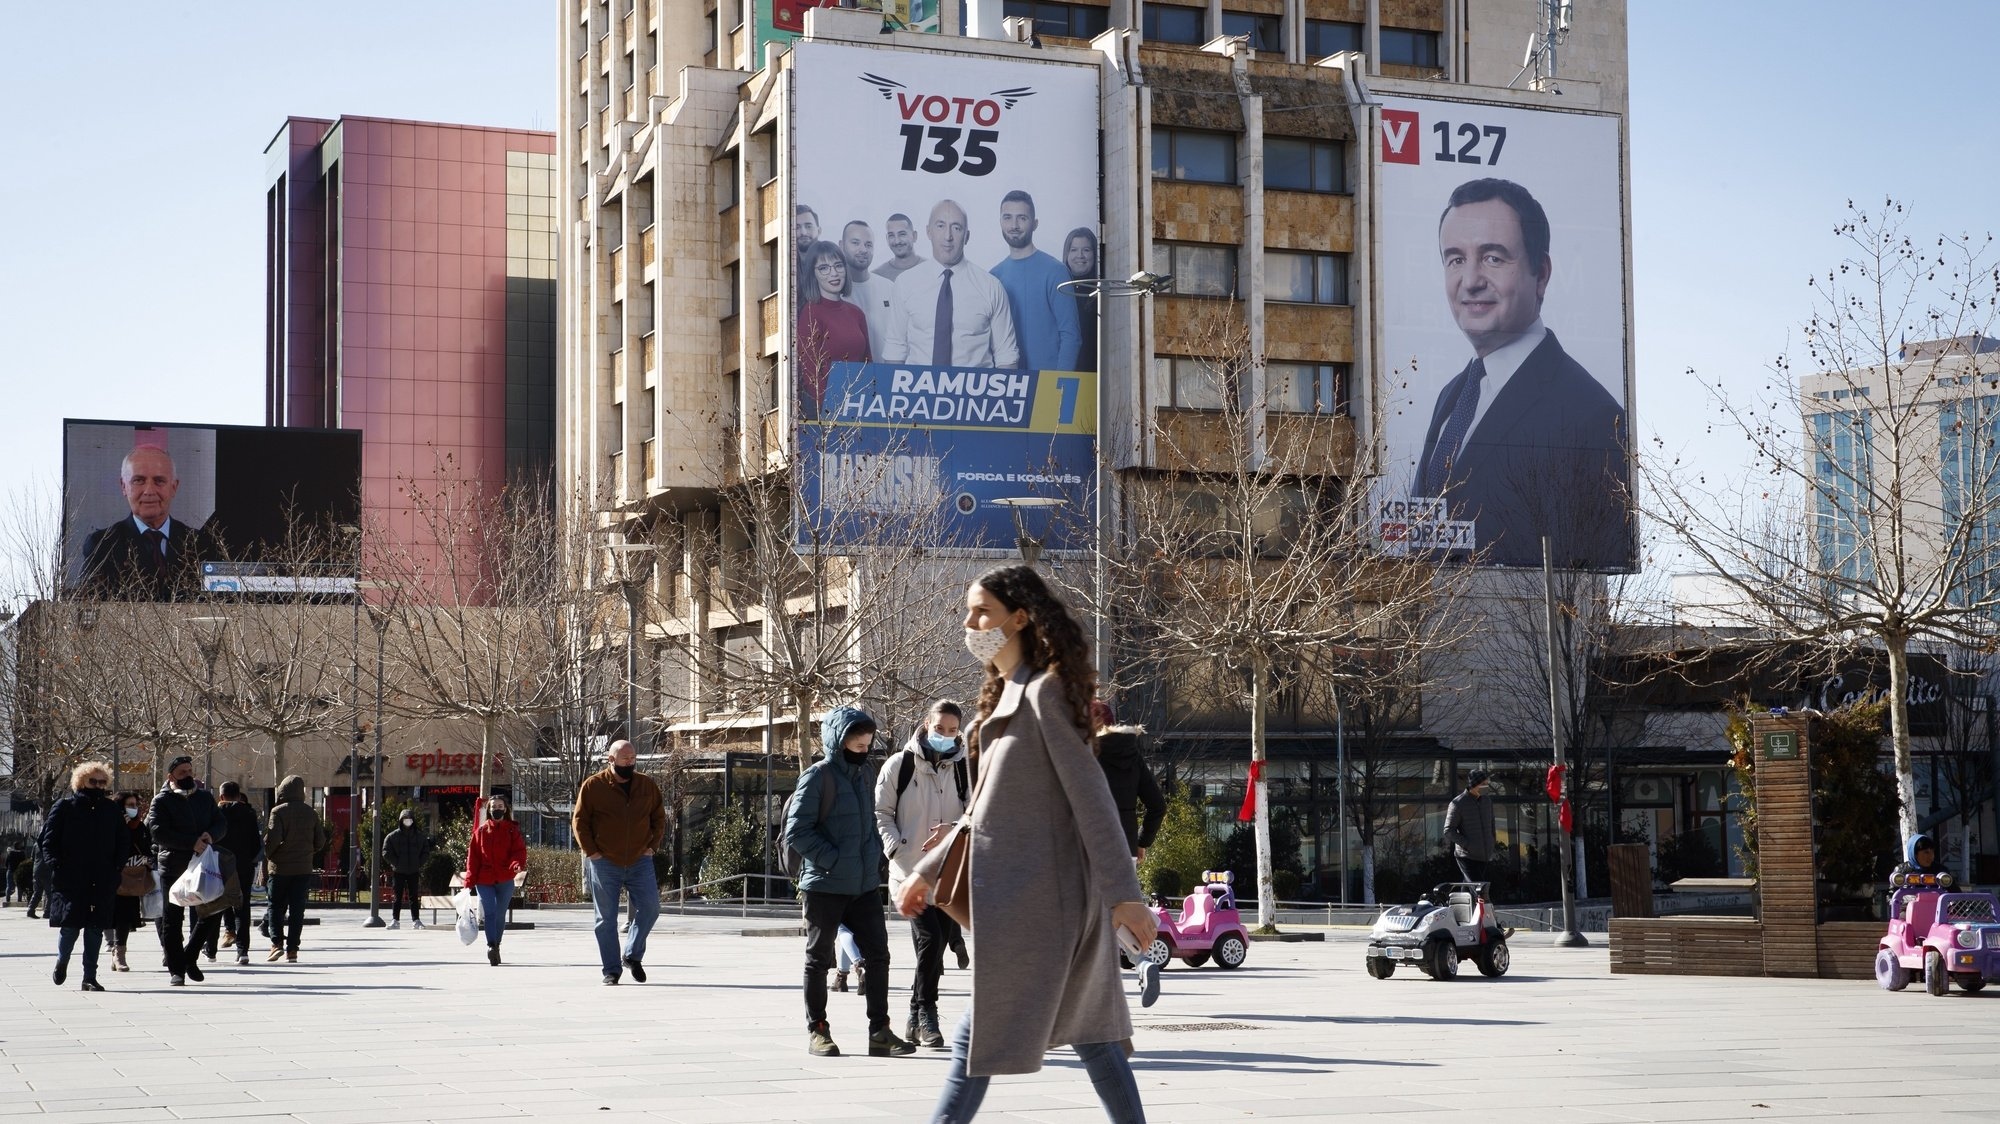 epa09006789 Pedestrians walk in front of the giant electoral posters showing the leader of the movement Self-determination (Vetevendoje) Albin Kurti (R) and leader of the Alliance for the Future of Kosova (AAK) Ramush Haradinaj (L) in Pristina, Kosovo, 12 February 2021. Kosovo's early parliamentary elections will be held on 14 February 2021.  EPA/VALDRIN XHEMAJ